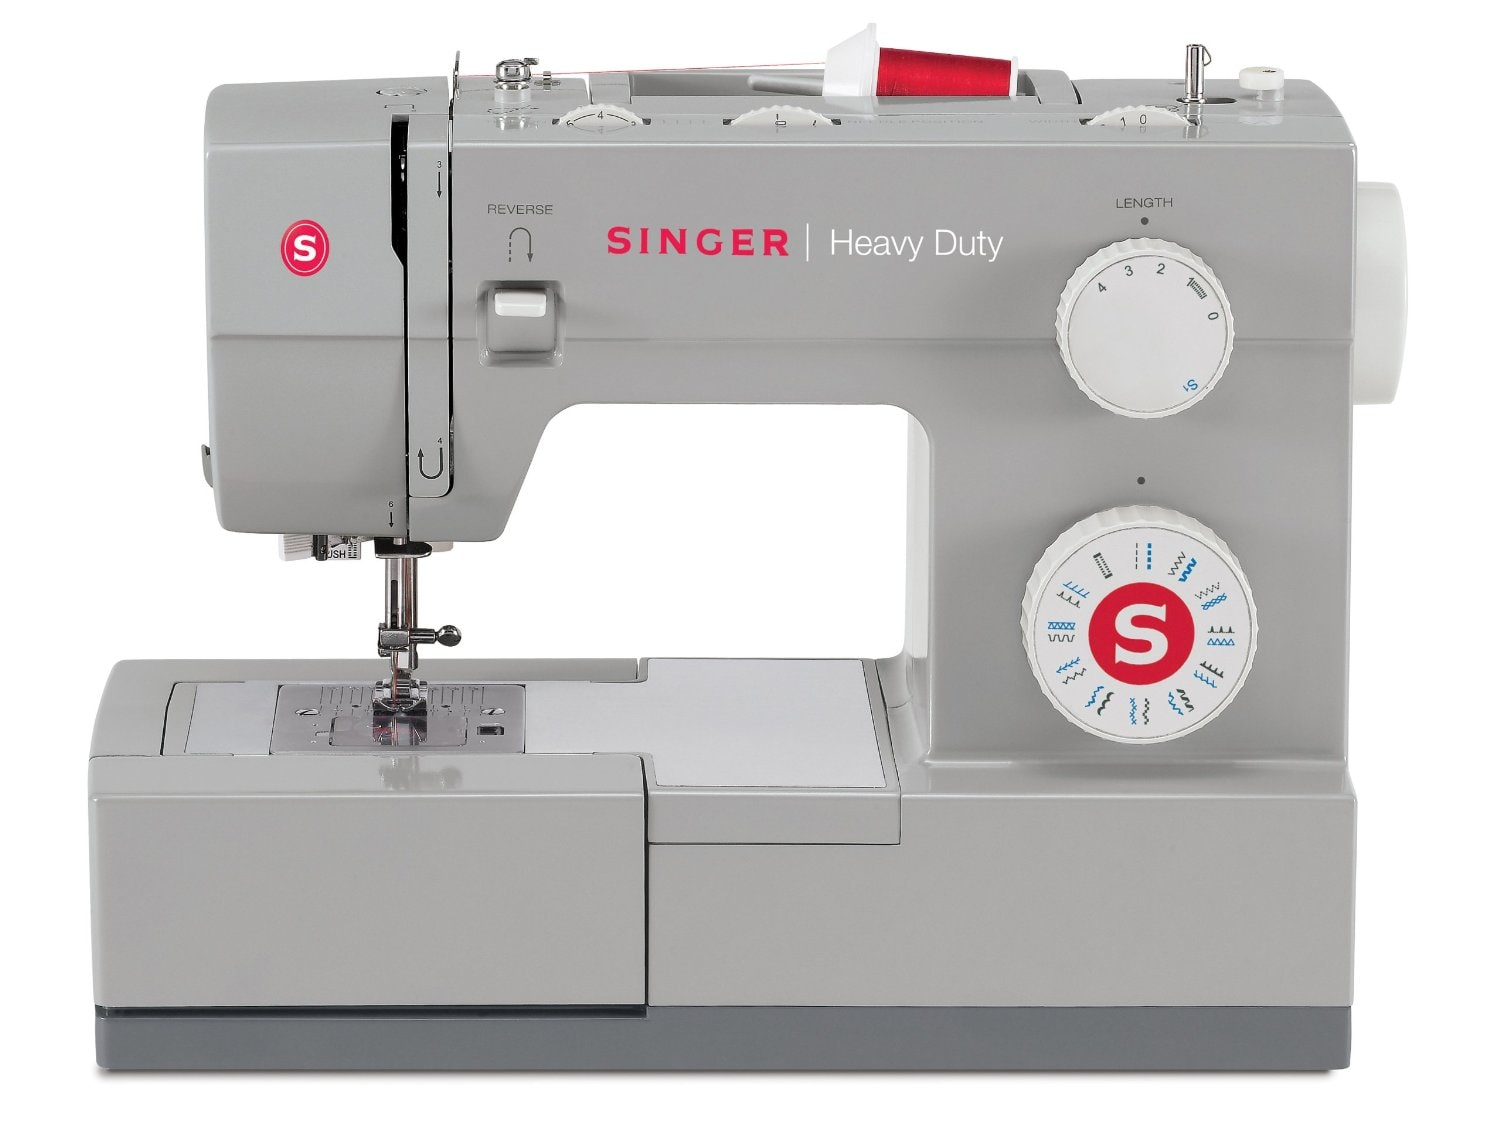 SINGER 4423 Heavy Duty Review